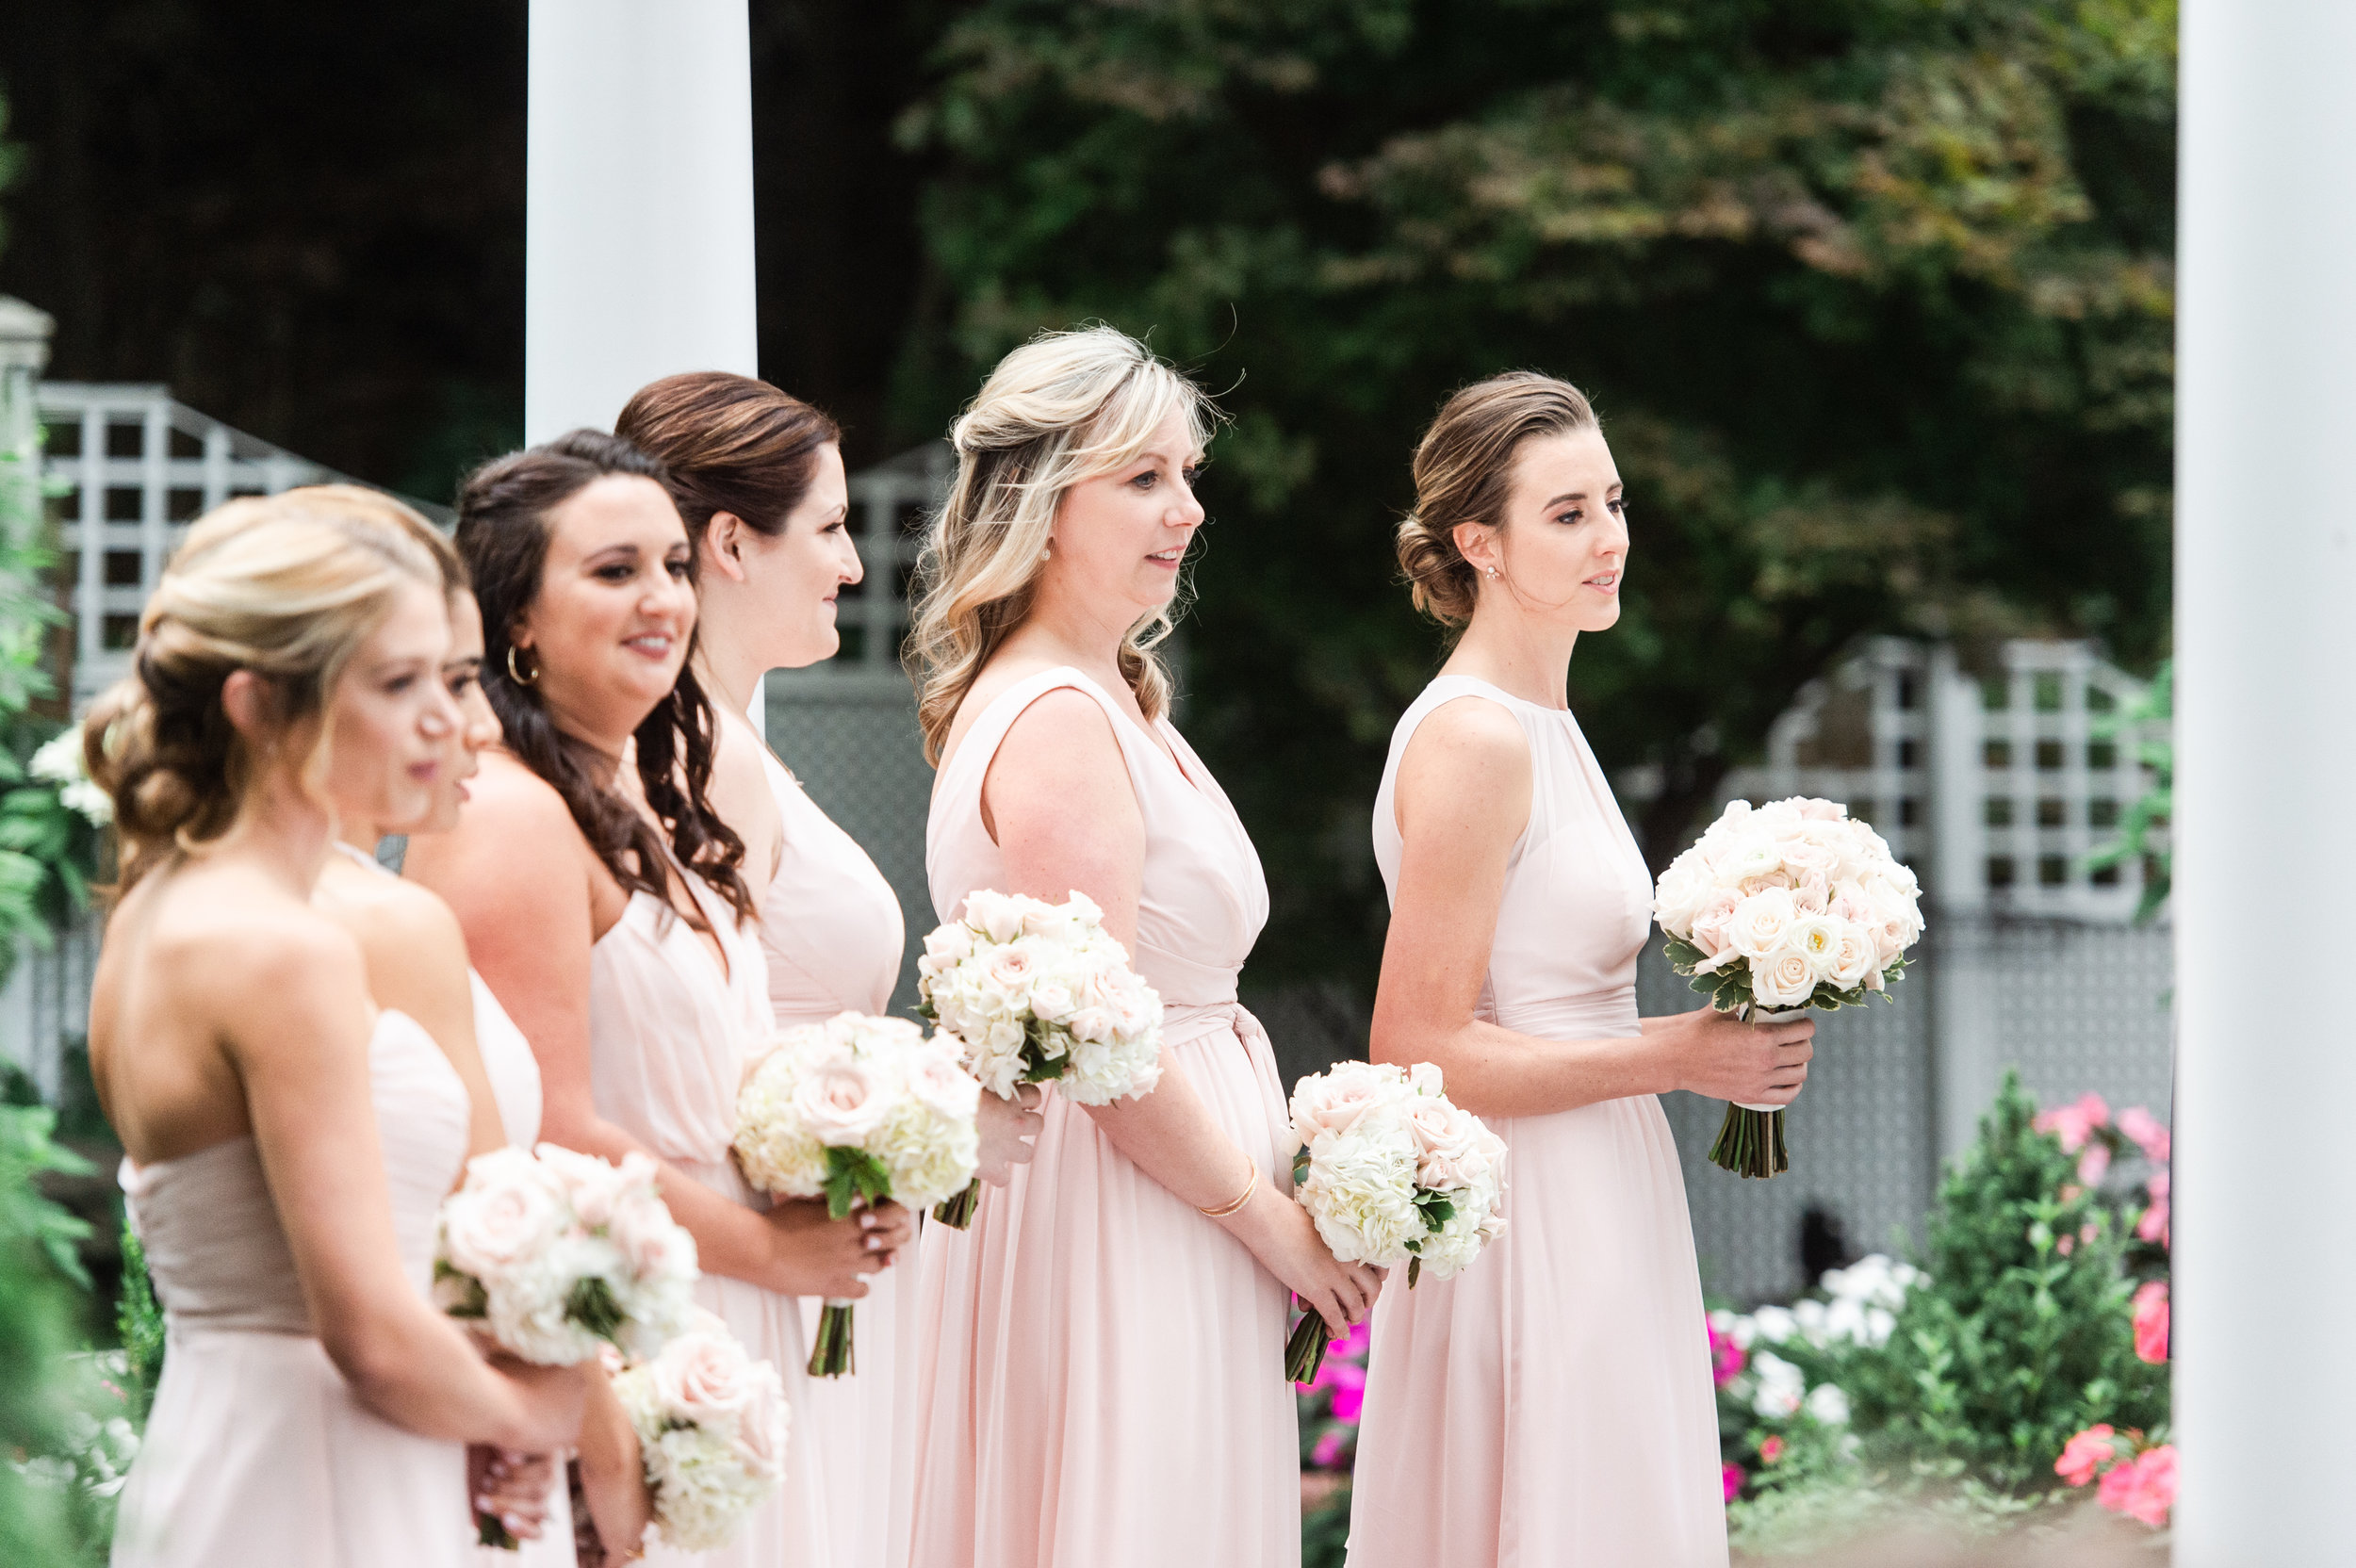 The Commons 1854 Topsfield MA wedding | Massachusetts wedding venue | Massachusetts wedding photography | First look | North Shore MA Wedding photos | outdoor ceremony | bridesmaids blush gowns